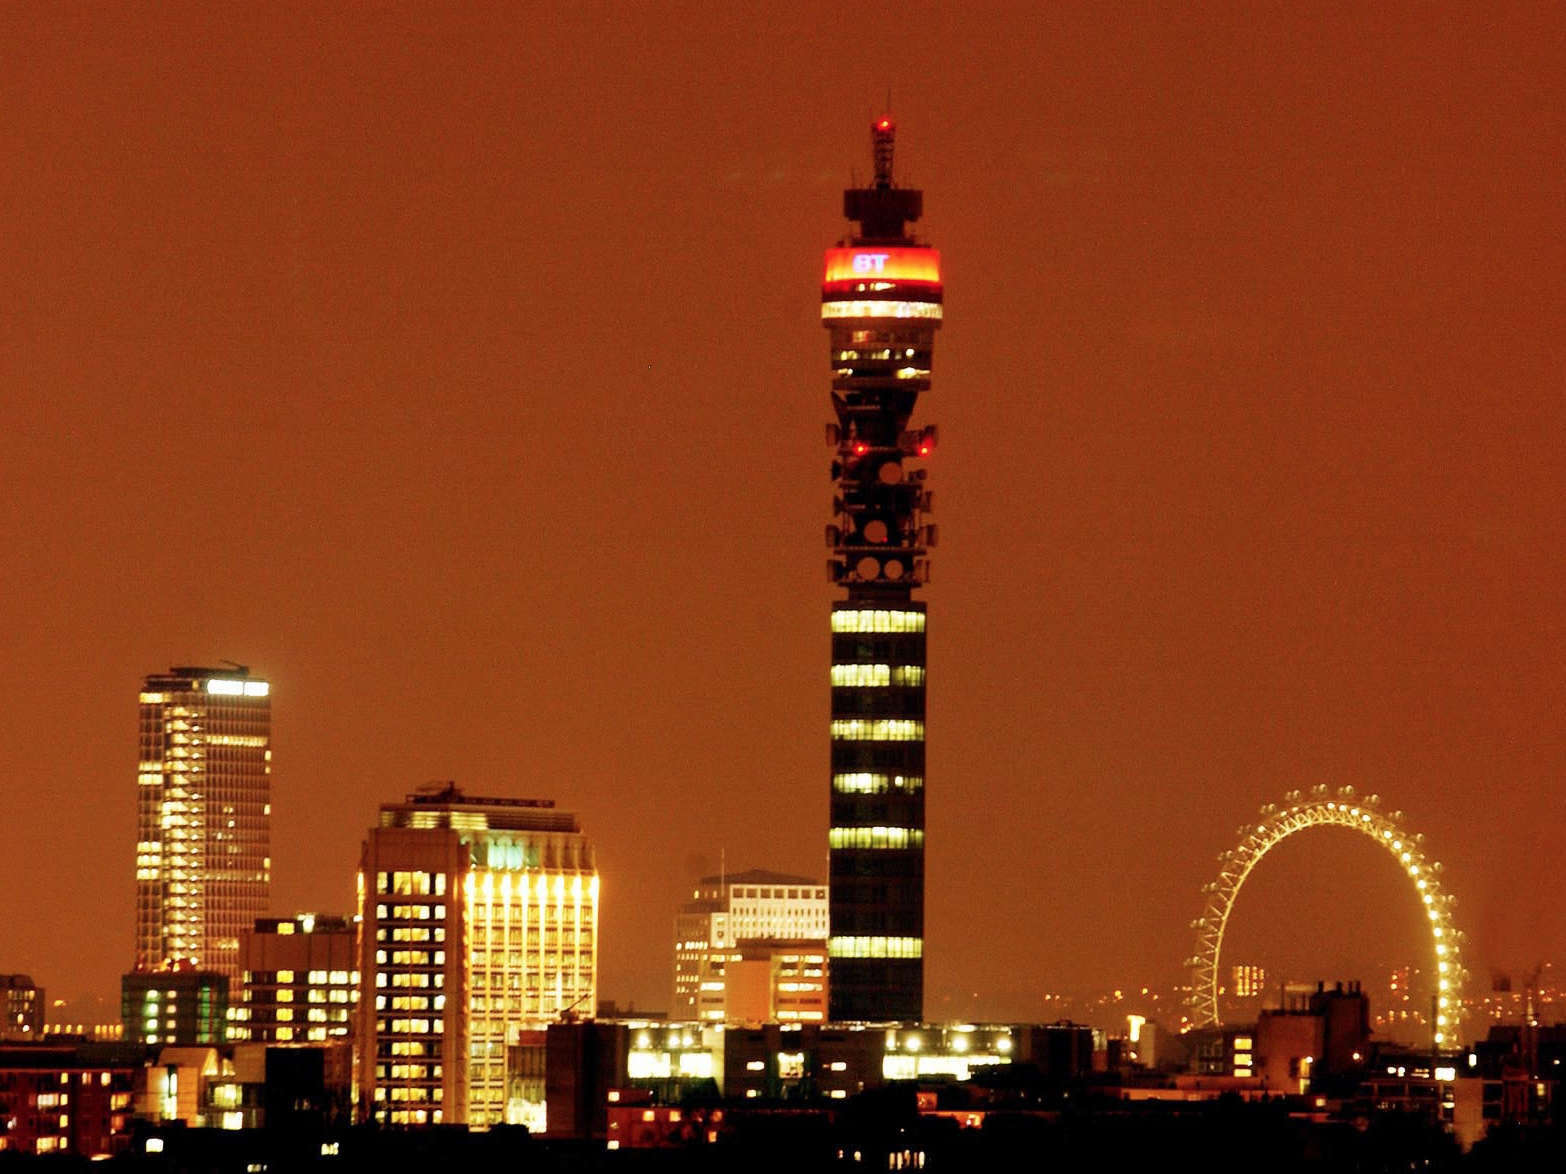 bt tower night time